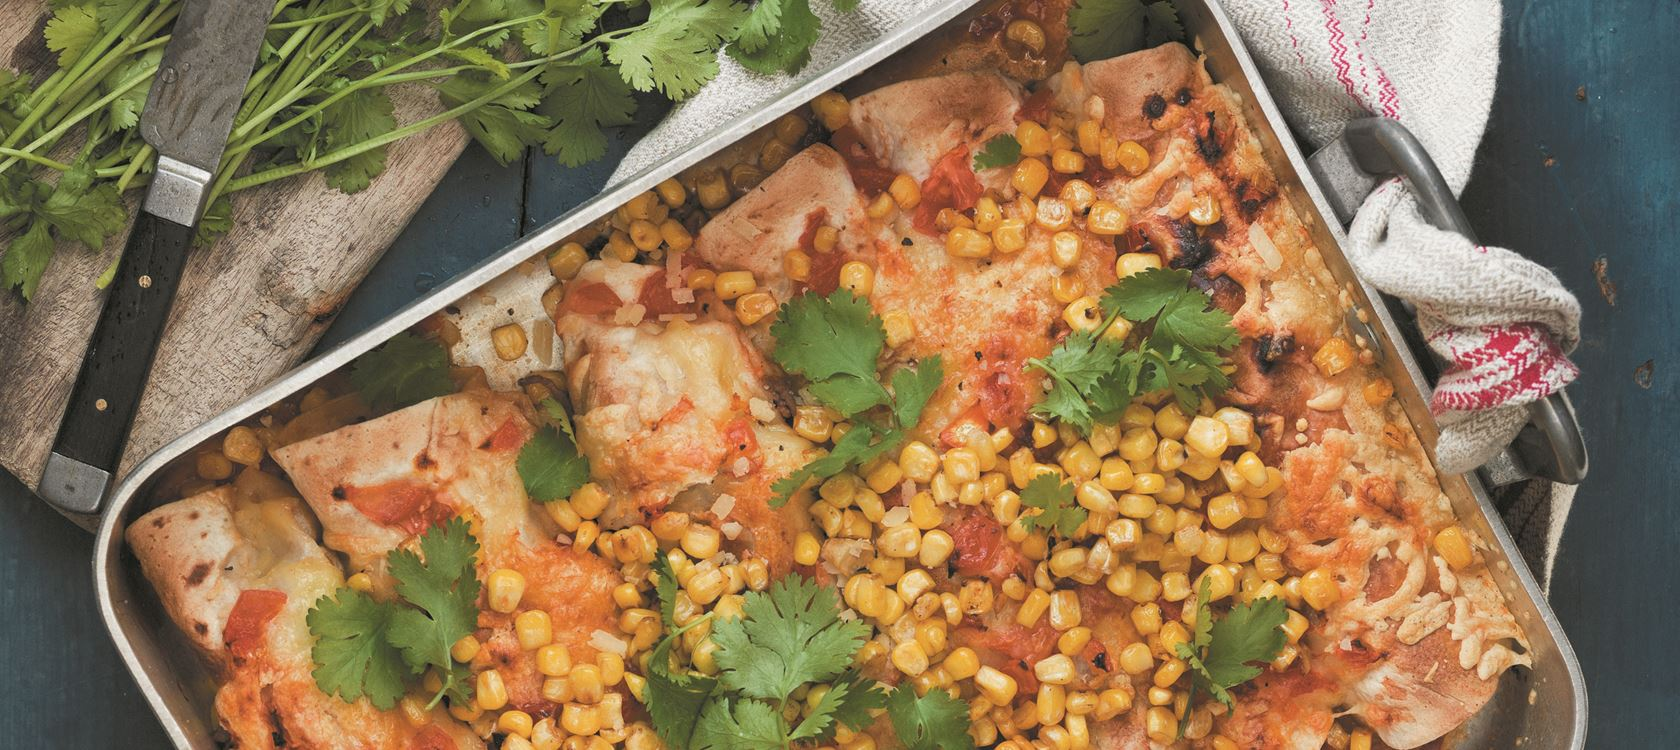 Enchiladas with roasted corn